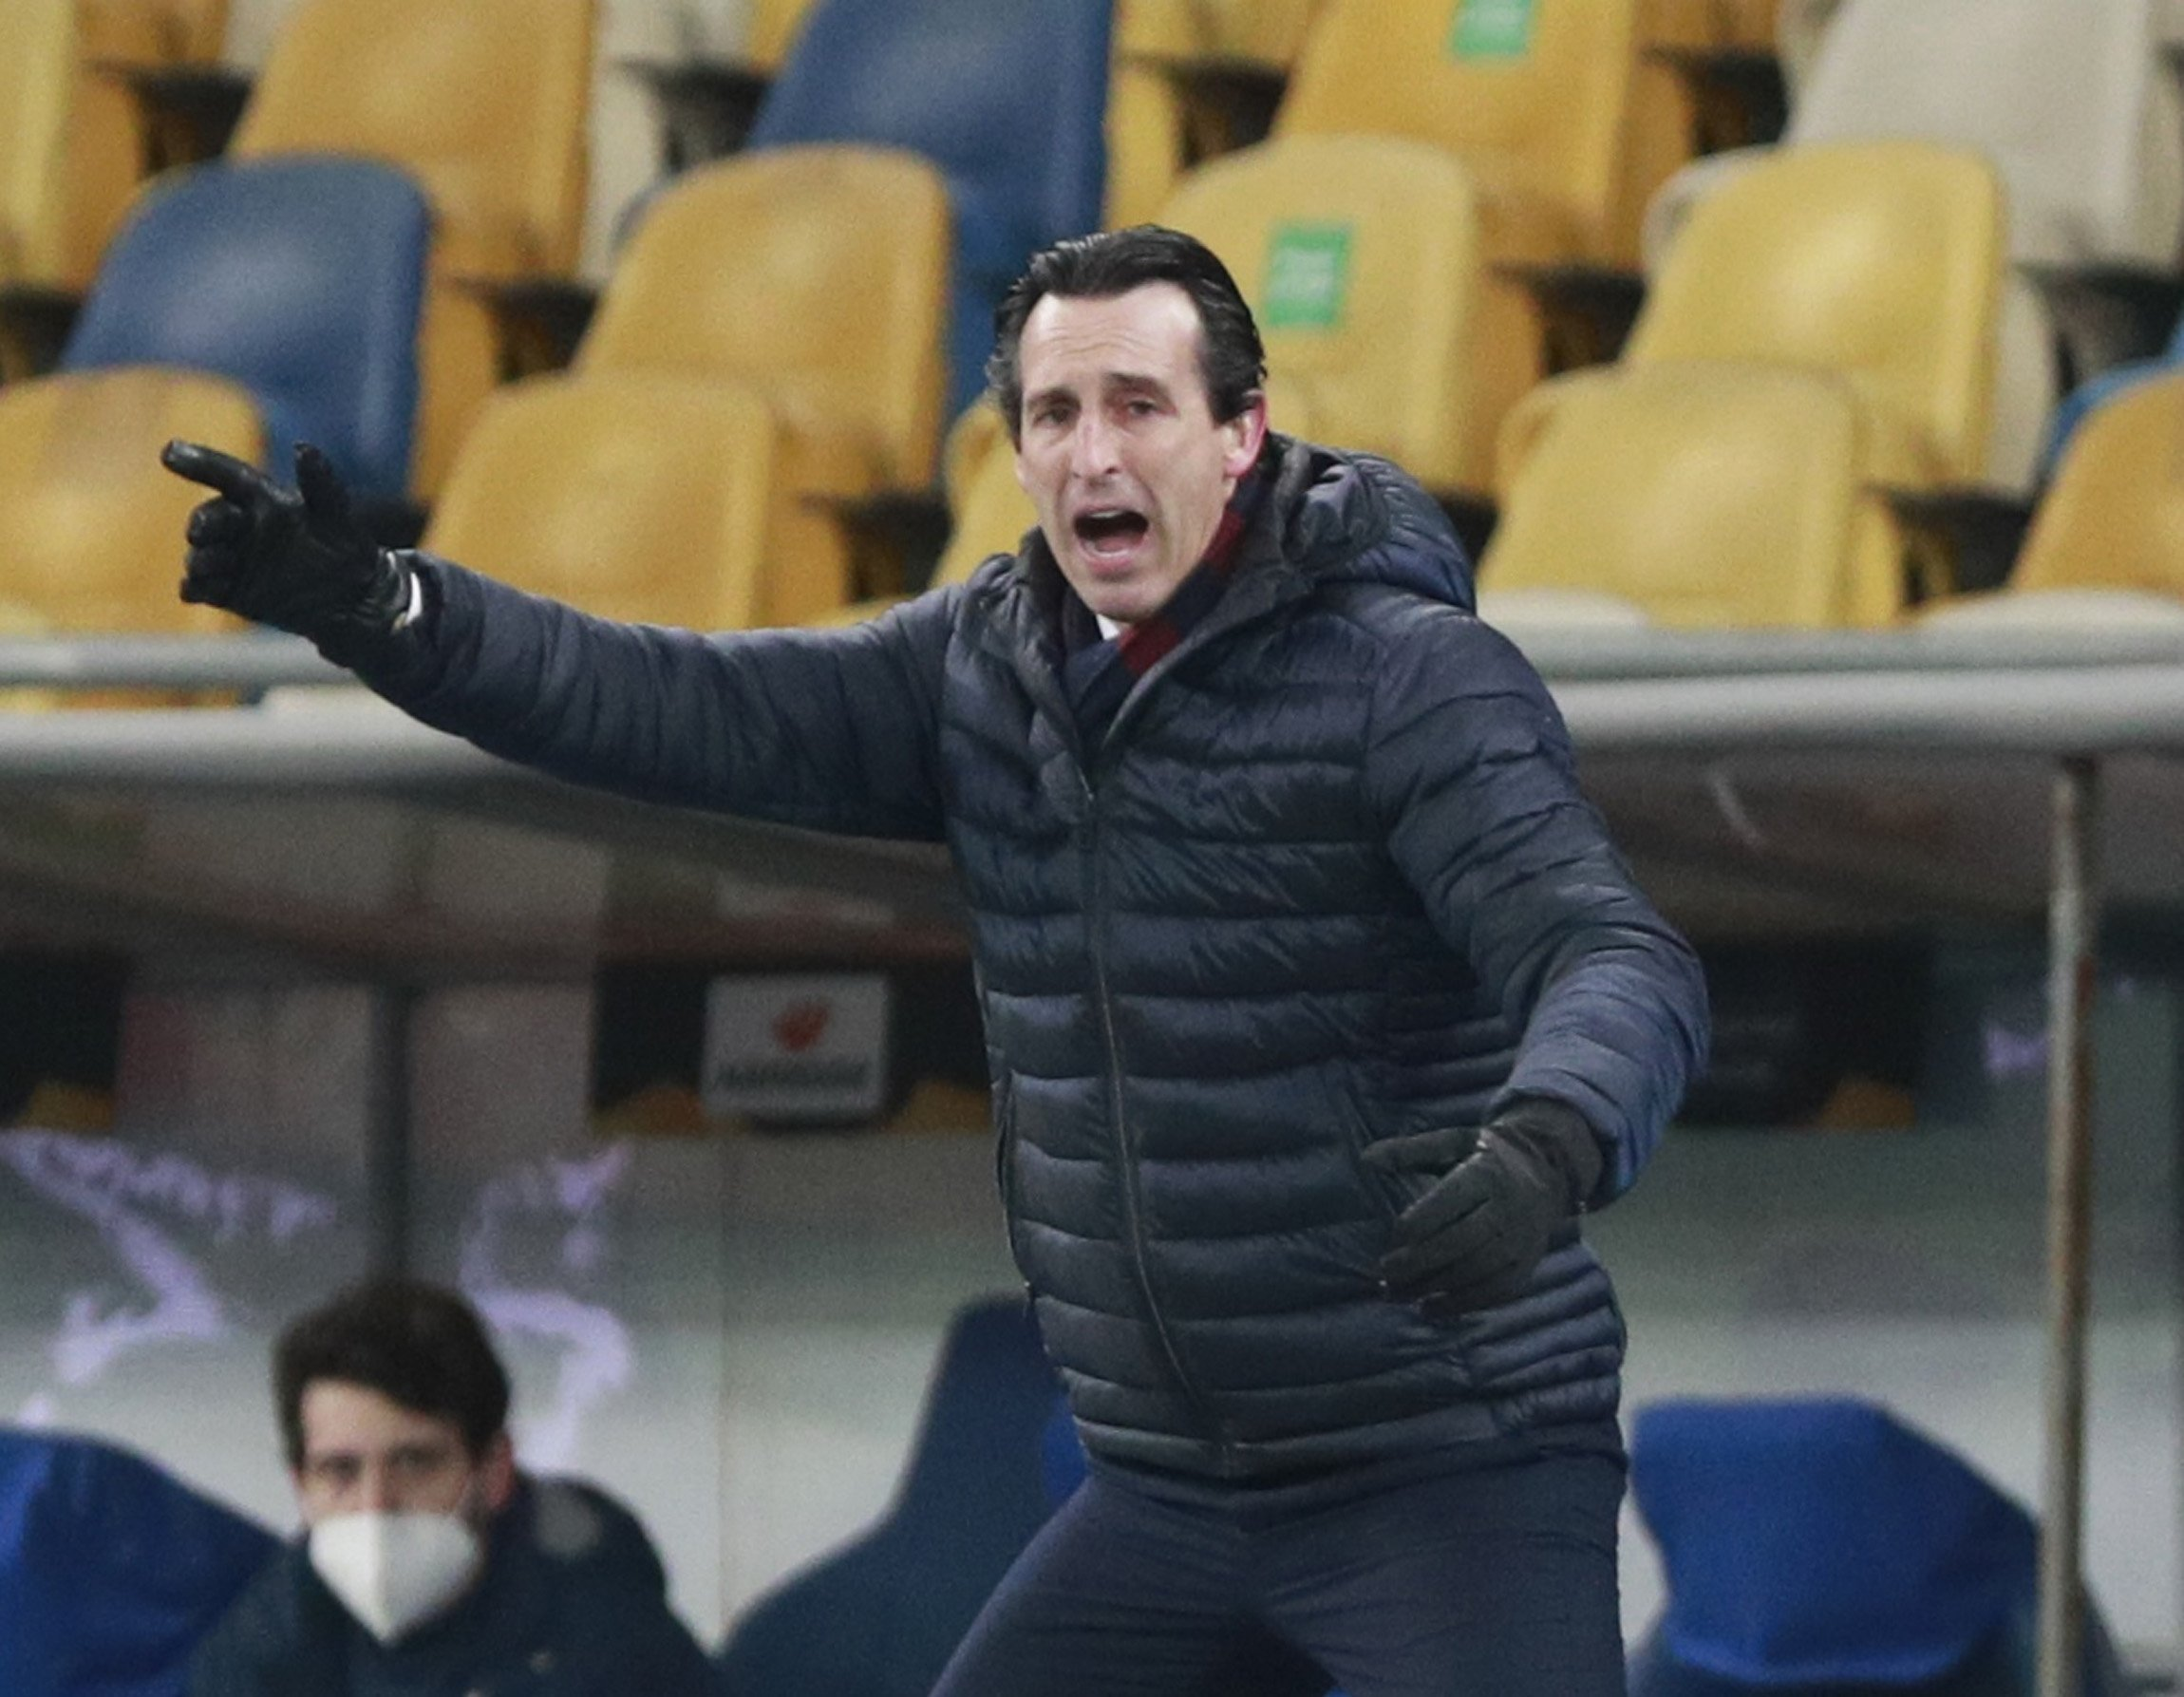 Villarreal coach Unai Emery reacts during a Europa League Round of 16, first-leg match against Dynamo Kyiv at the NSC Olympiyskiy, Kyiv, Ukraine, March 11, 2021. (Reuters Photo)